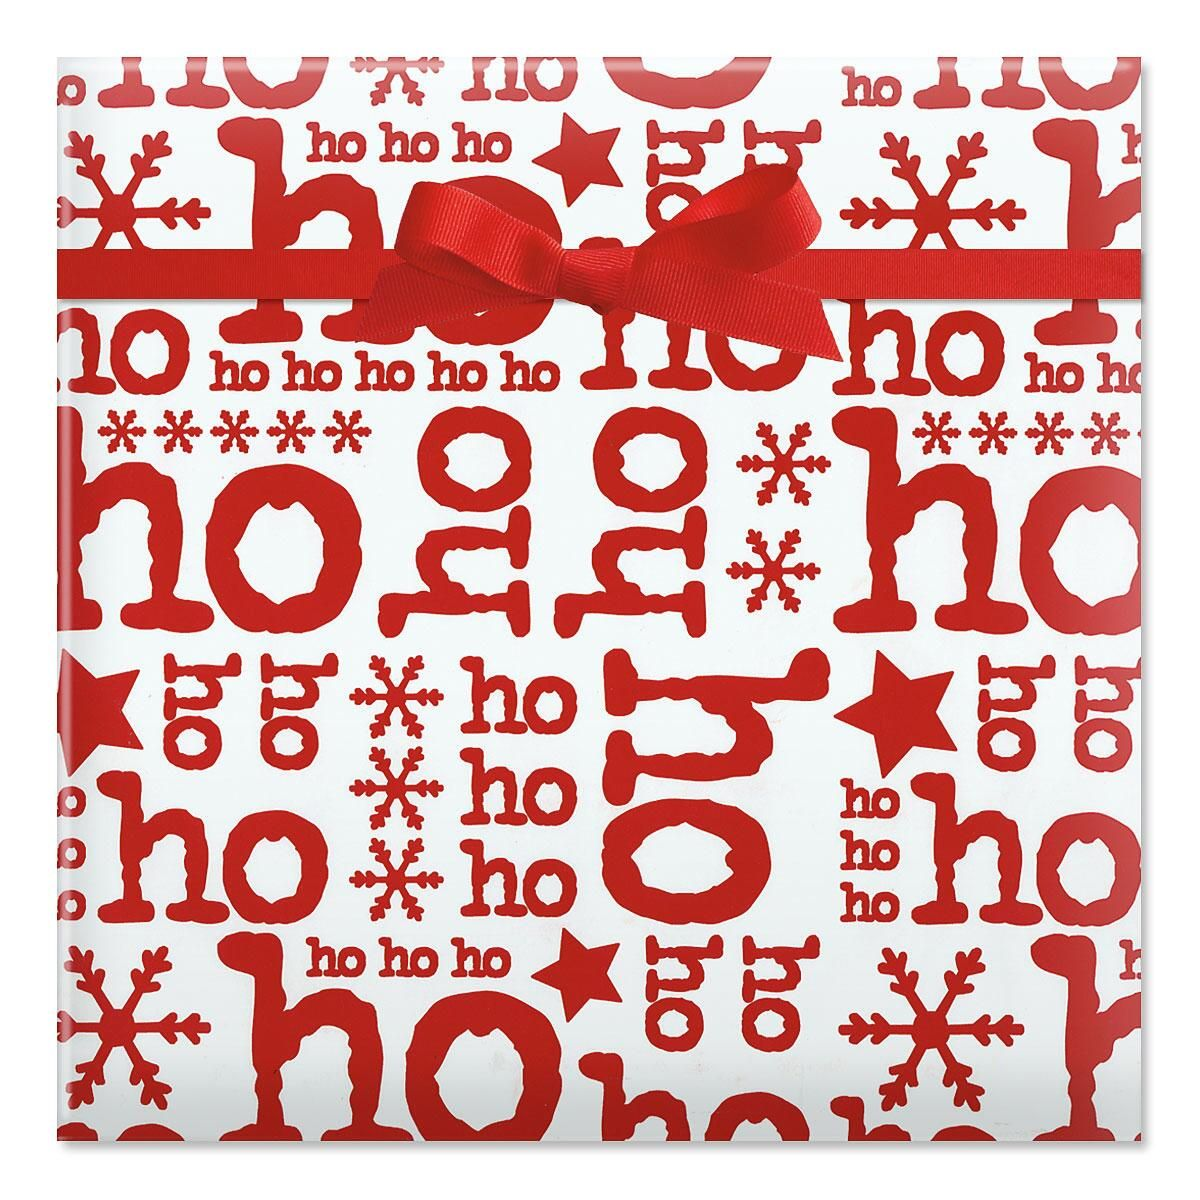 Ho Ho on White Jumbo Rolled Gift Wrap